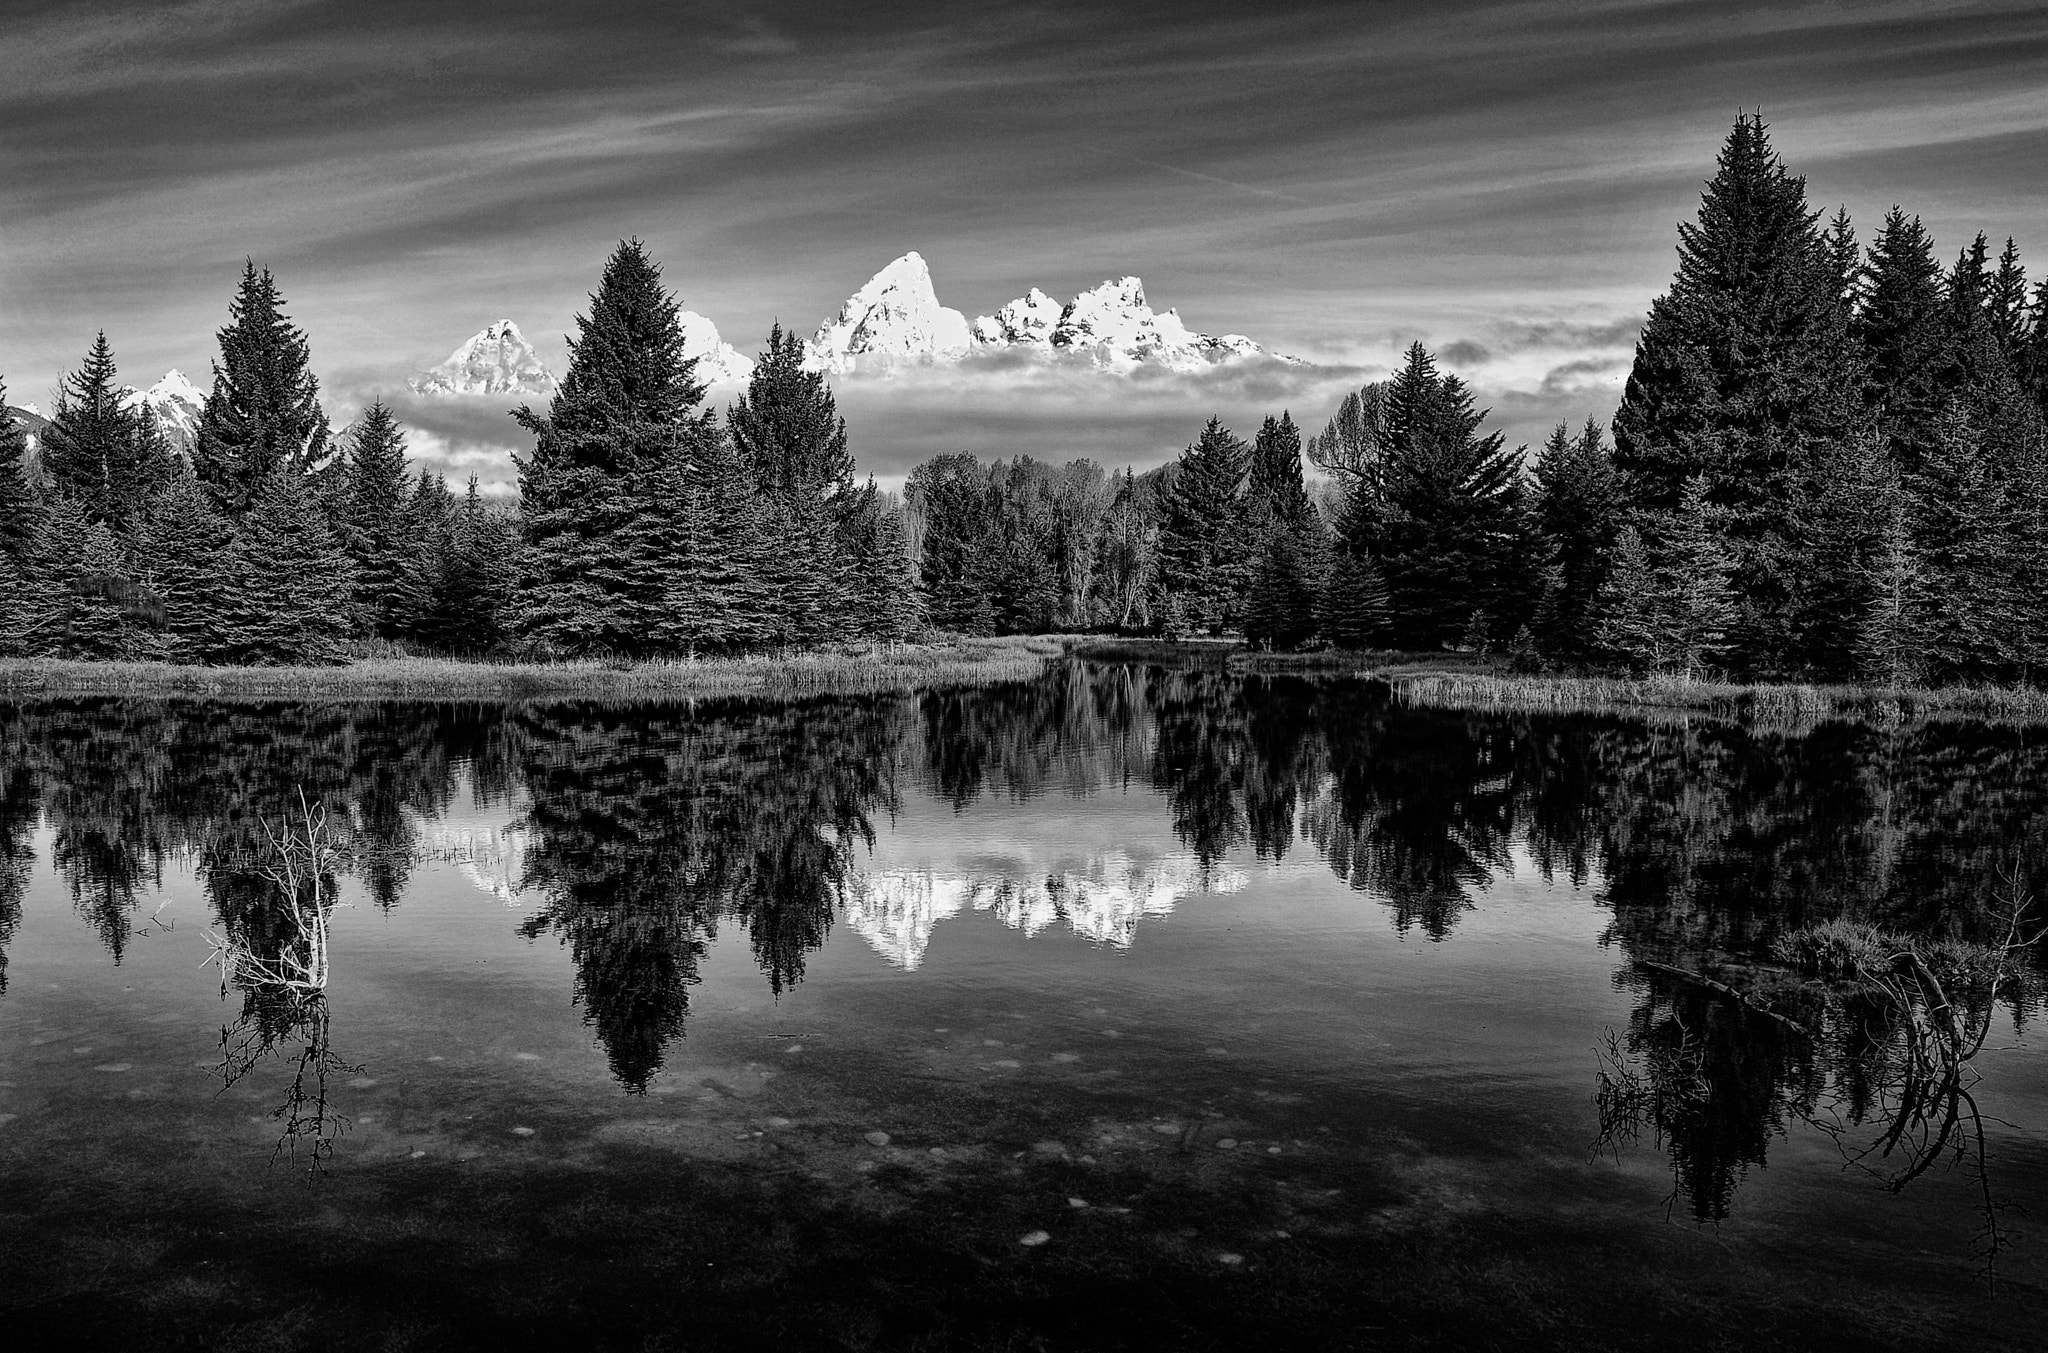 Photograph Timeless Beauty at the Pond by Jeff Clow on 500px